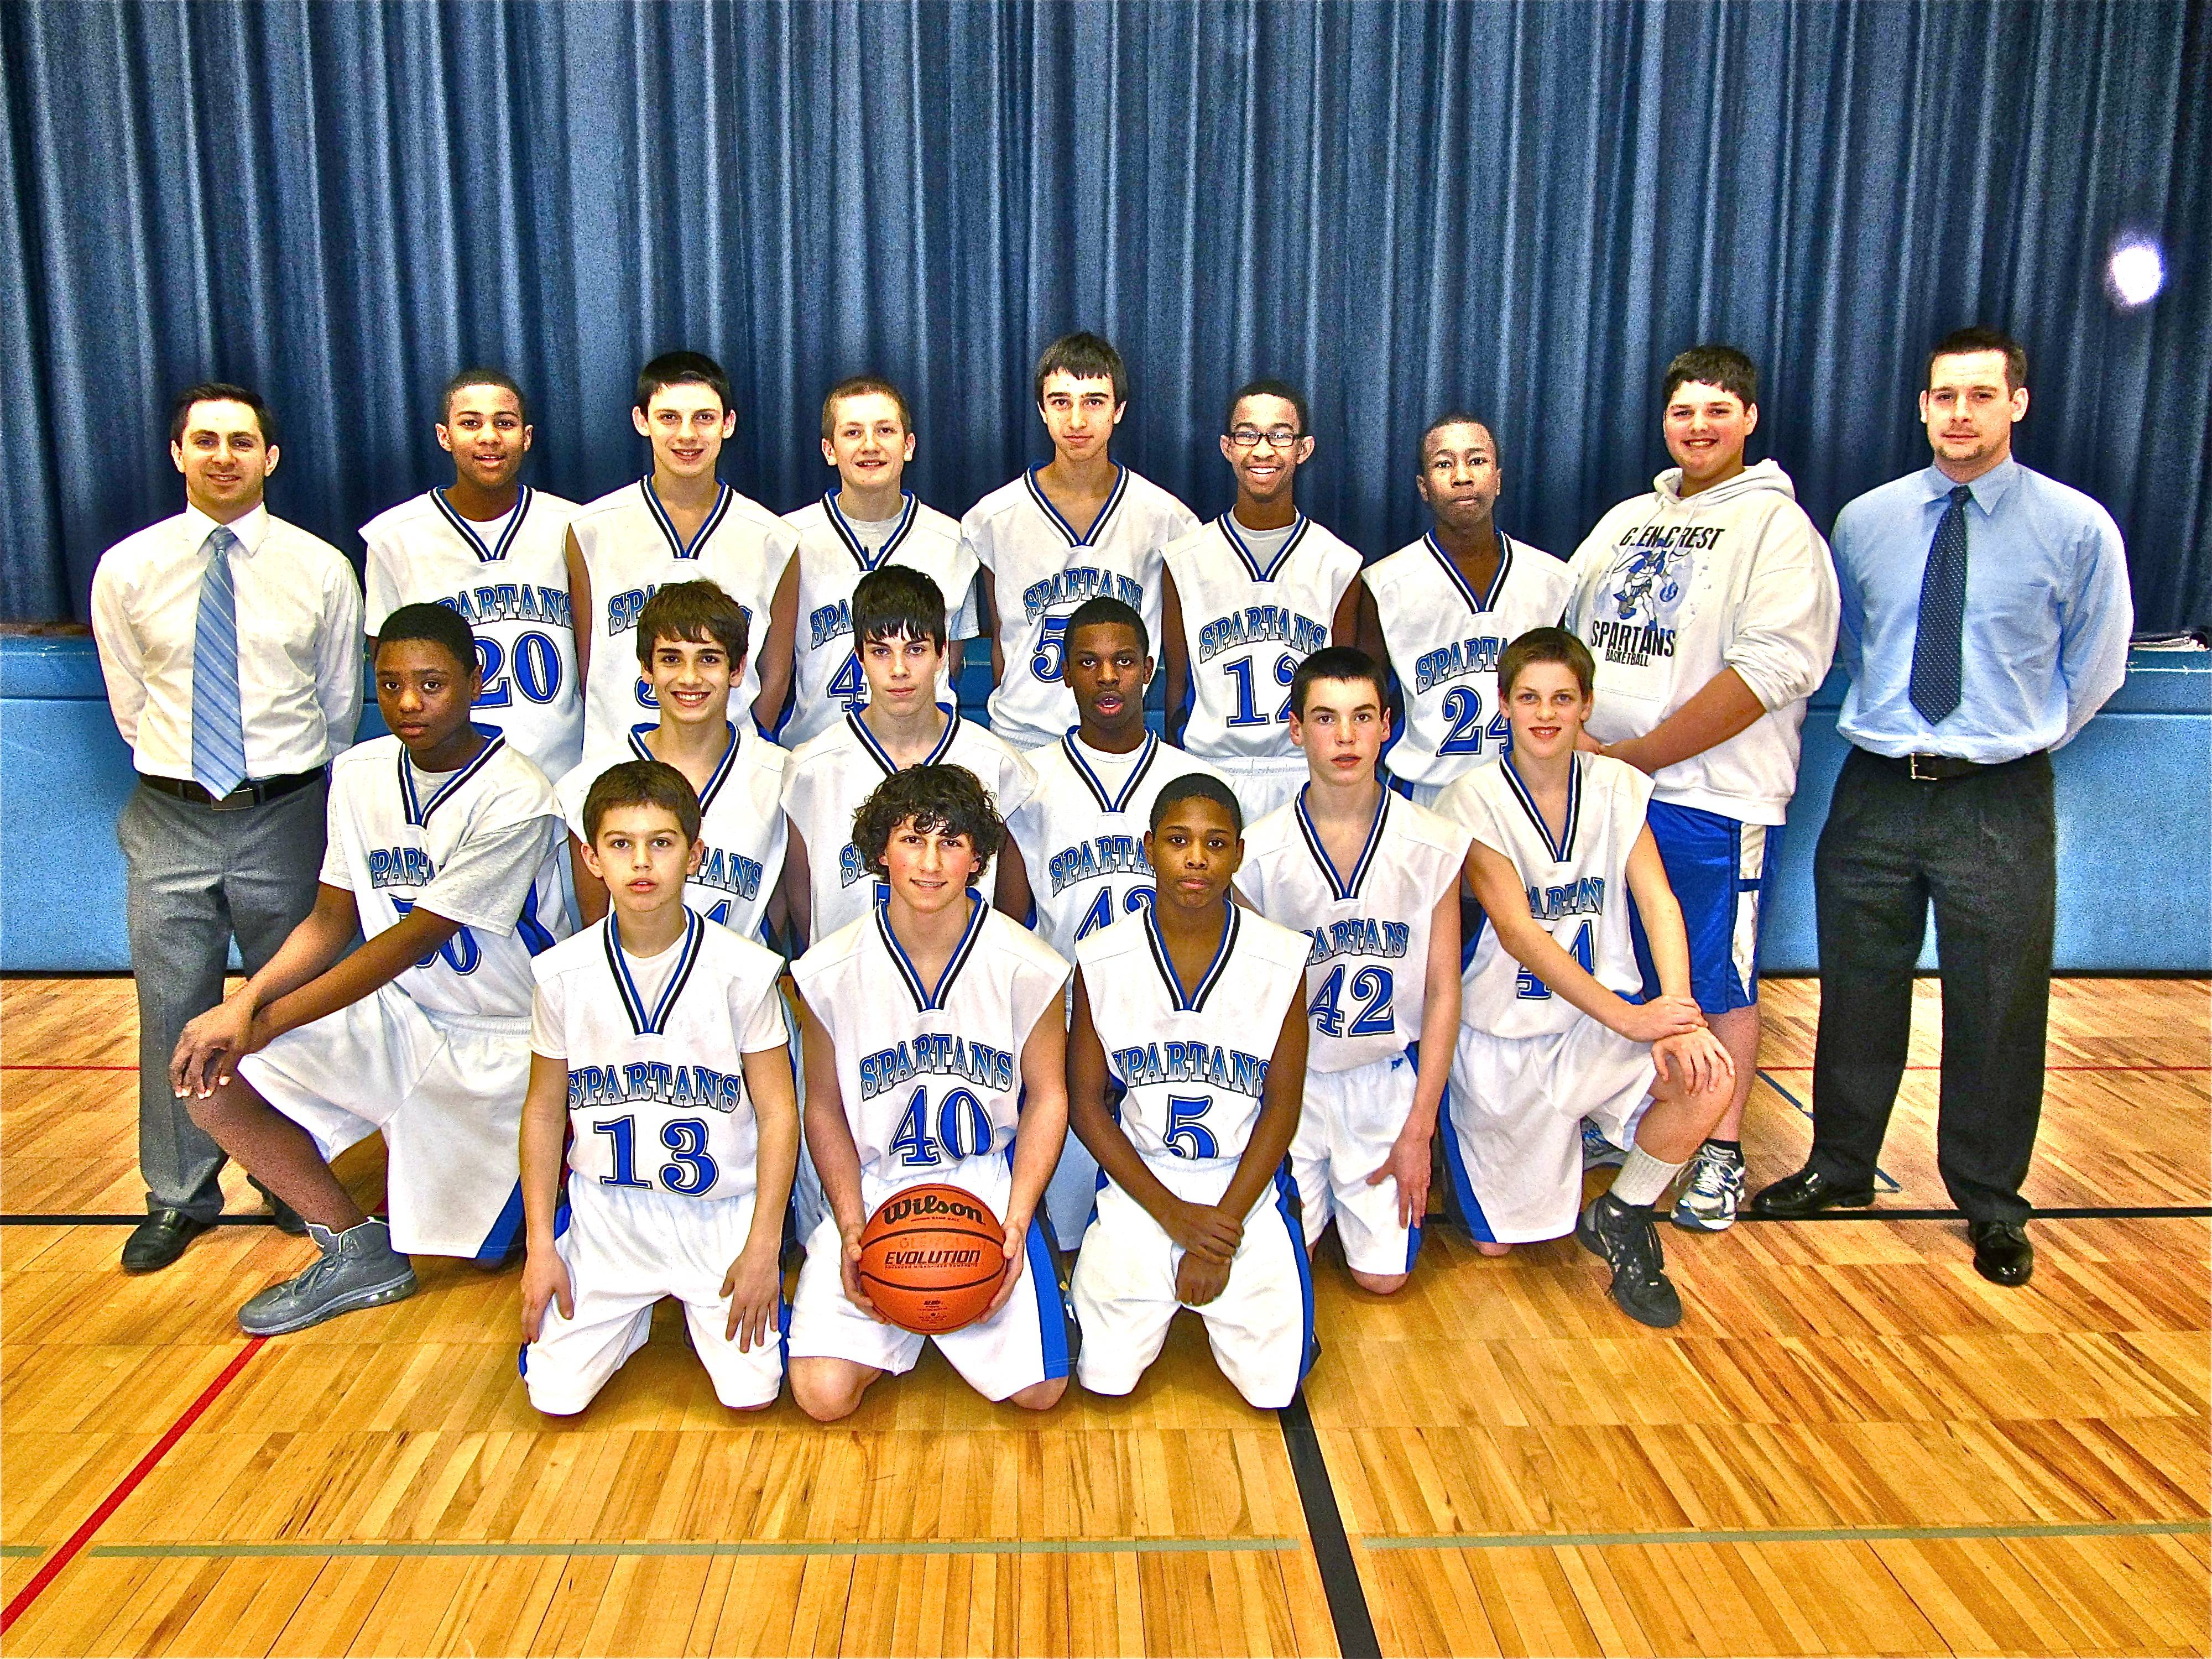 Glen Crest Middle School eighth-grade boys basketball team wins DuPage Metro Valley Association Conference with a 14-0 season.  The eighth-grade Spartans posted one of the most successful seasons in Glen Crest boys basketball history.